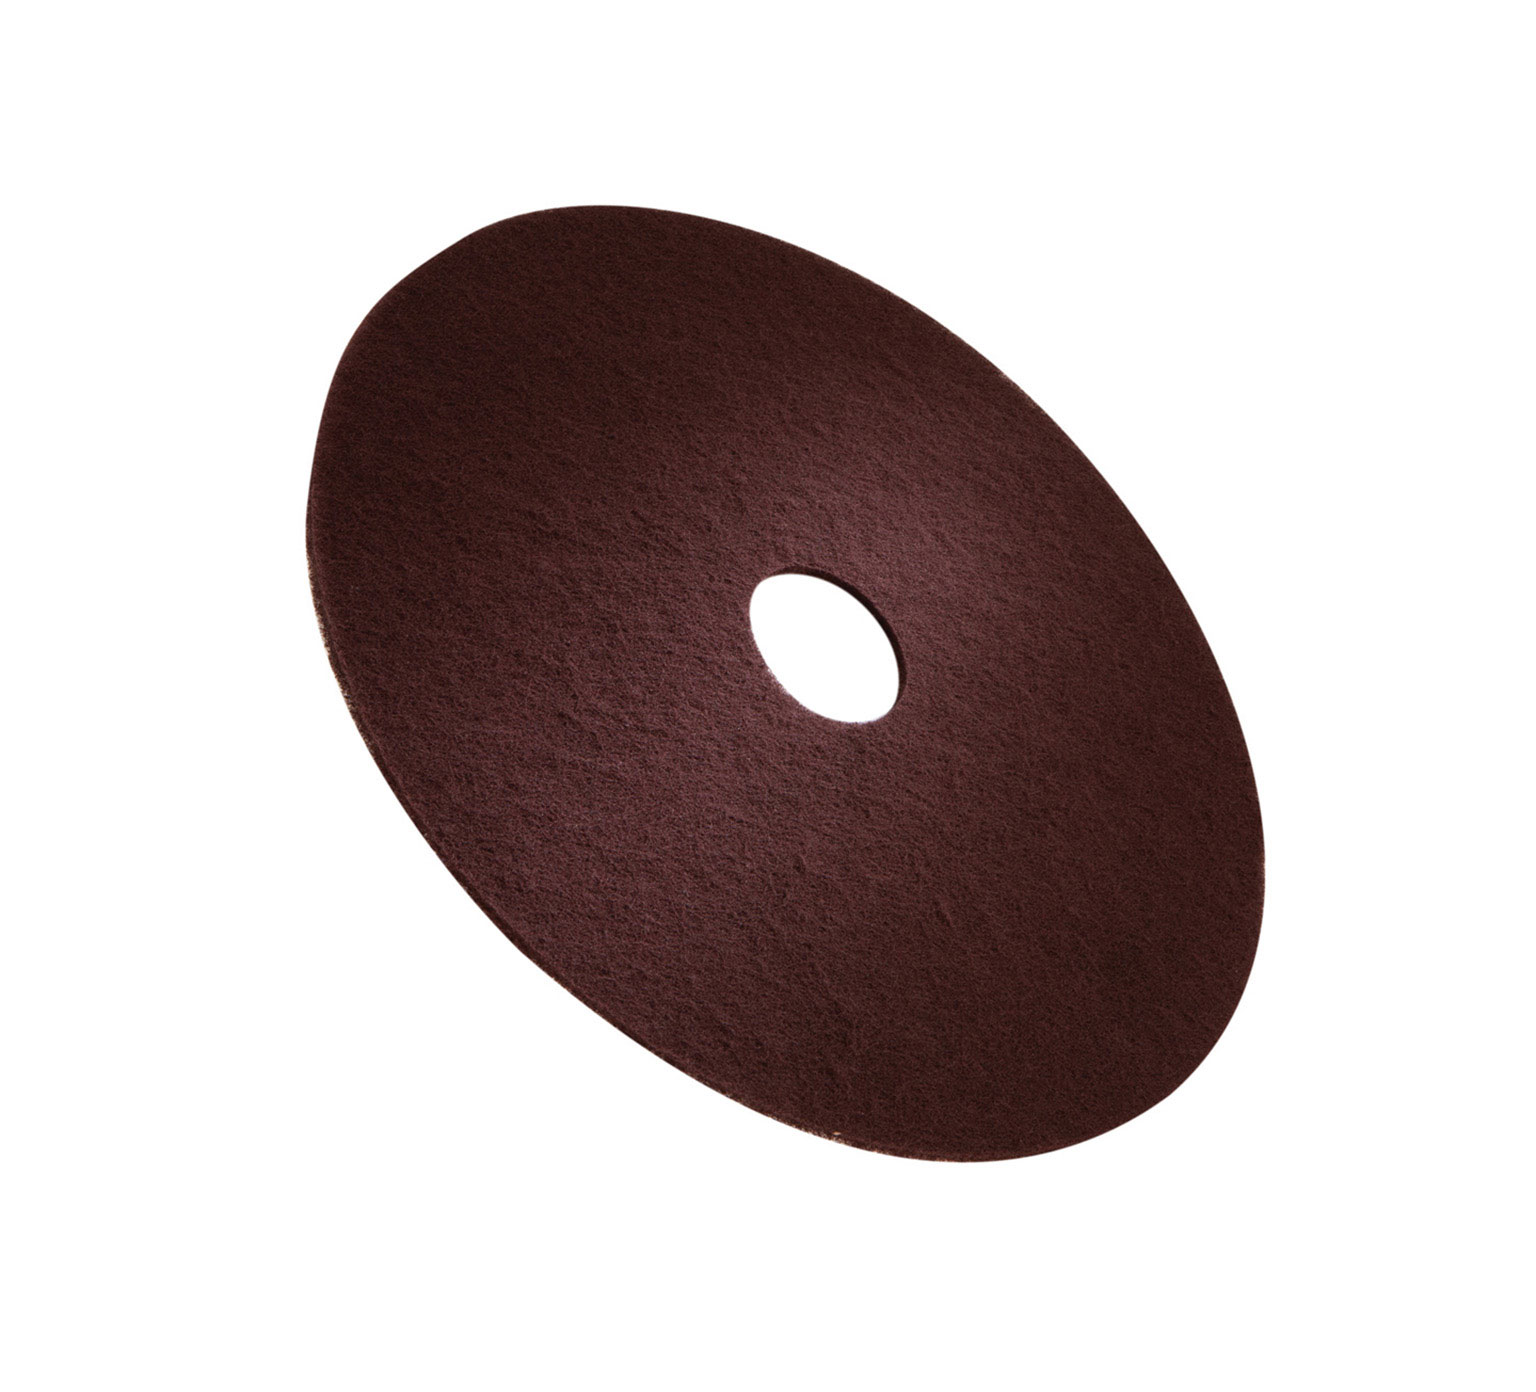 1051030 3M Maroon Stripping Pad – 20 in / 508 mm alt 1